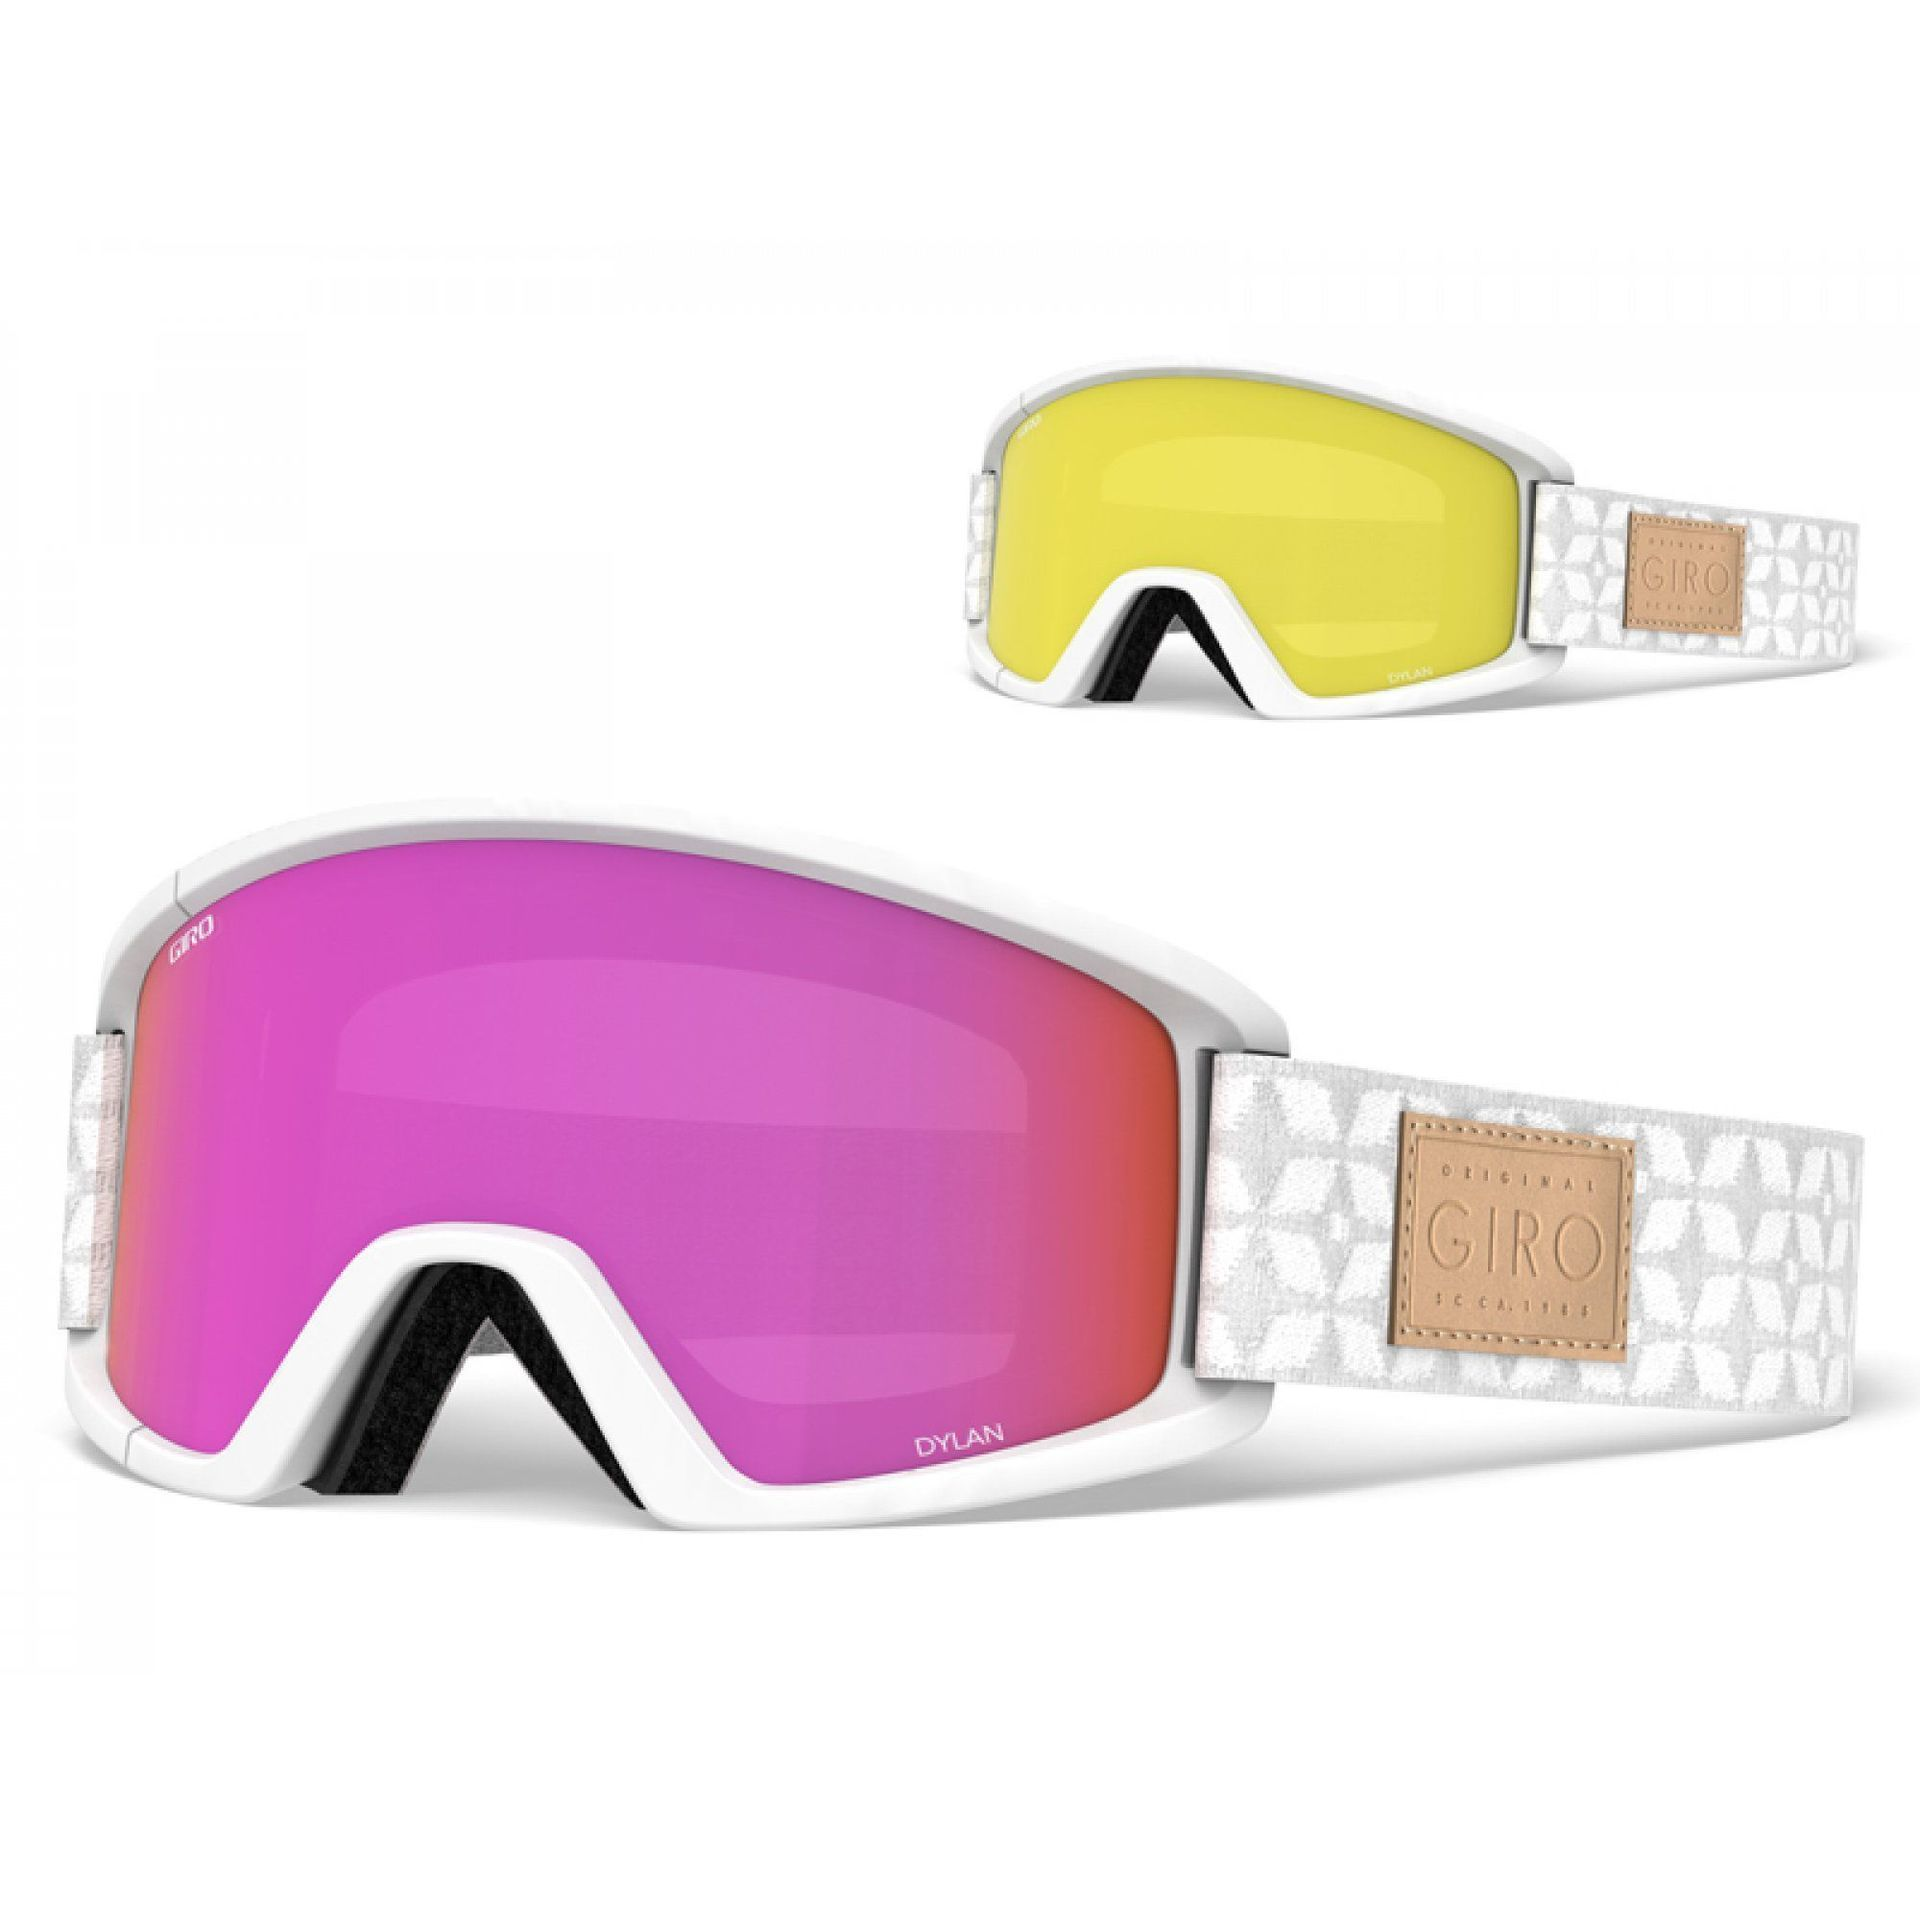 GOGLE GIRO DYLAN WHITE QUILTED|AMBER PINK+YELLOW 1